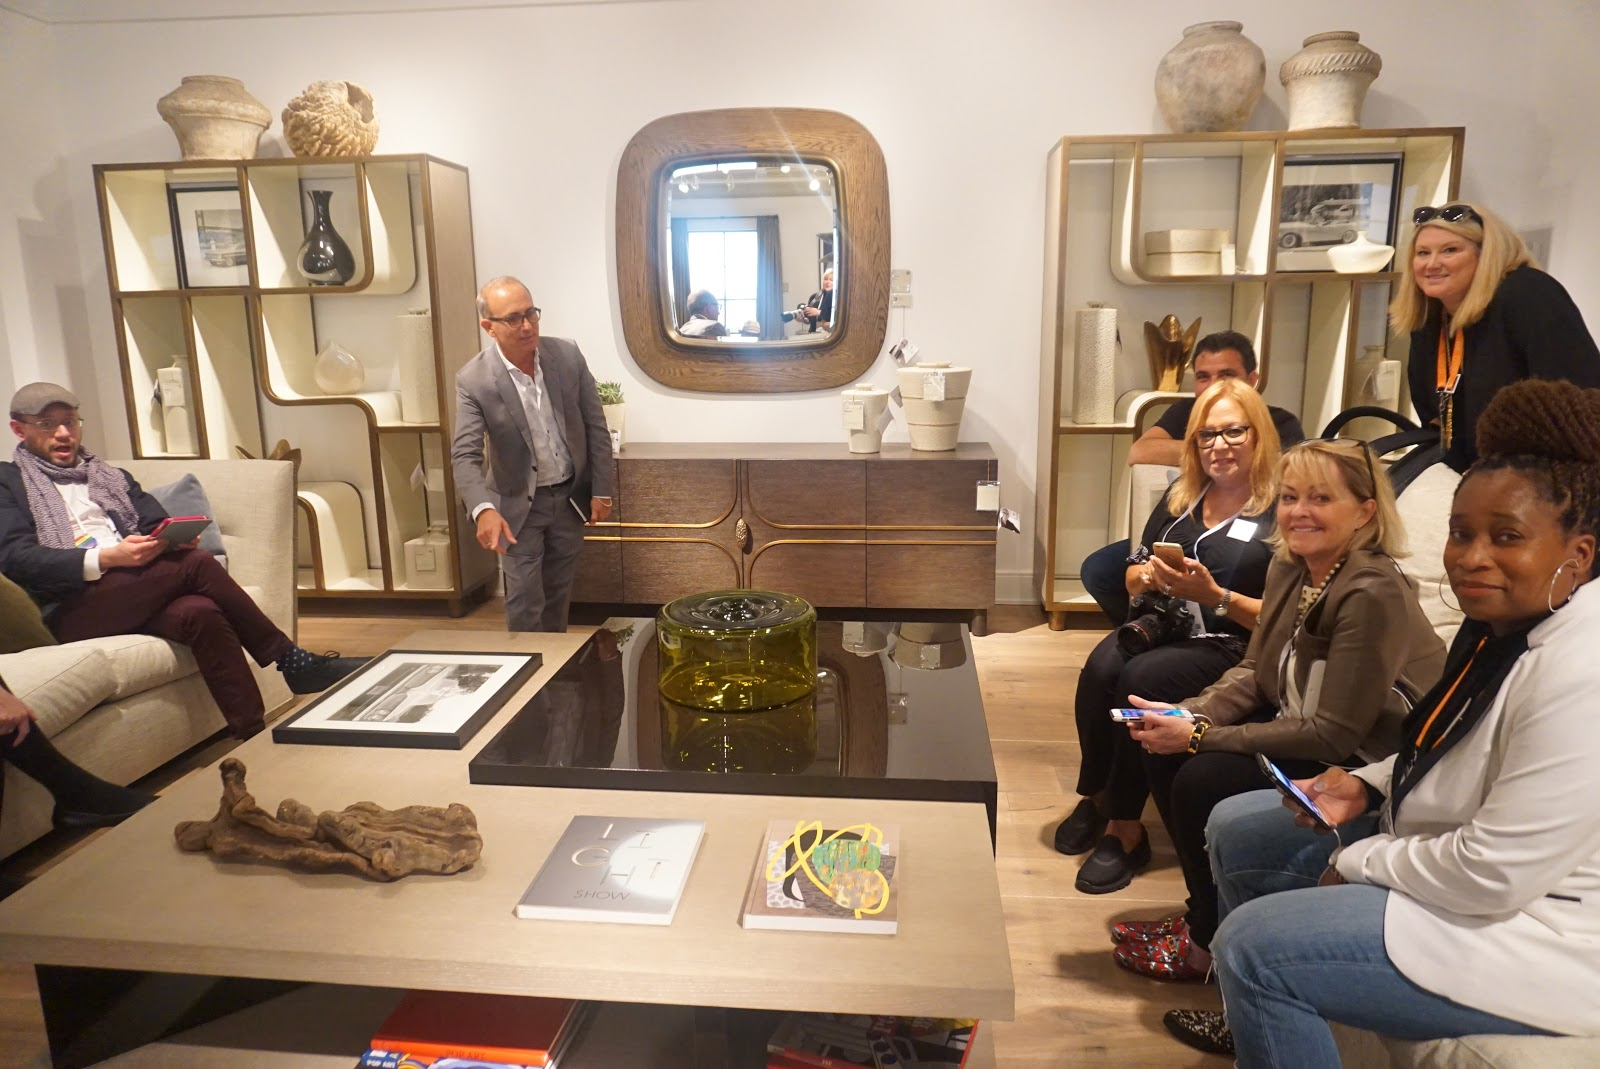 Our Tour With Michael In The Theodore Alexander Showroom At High Point